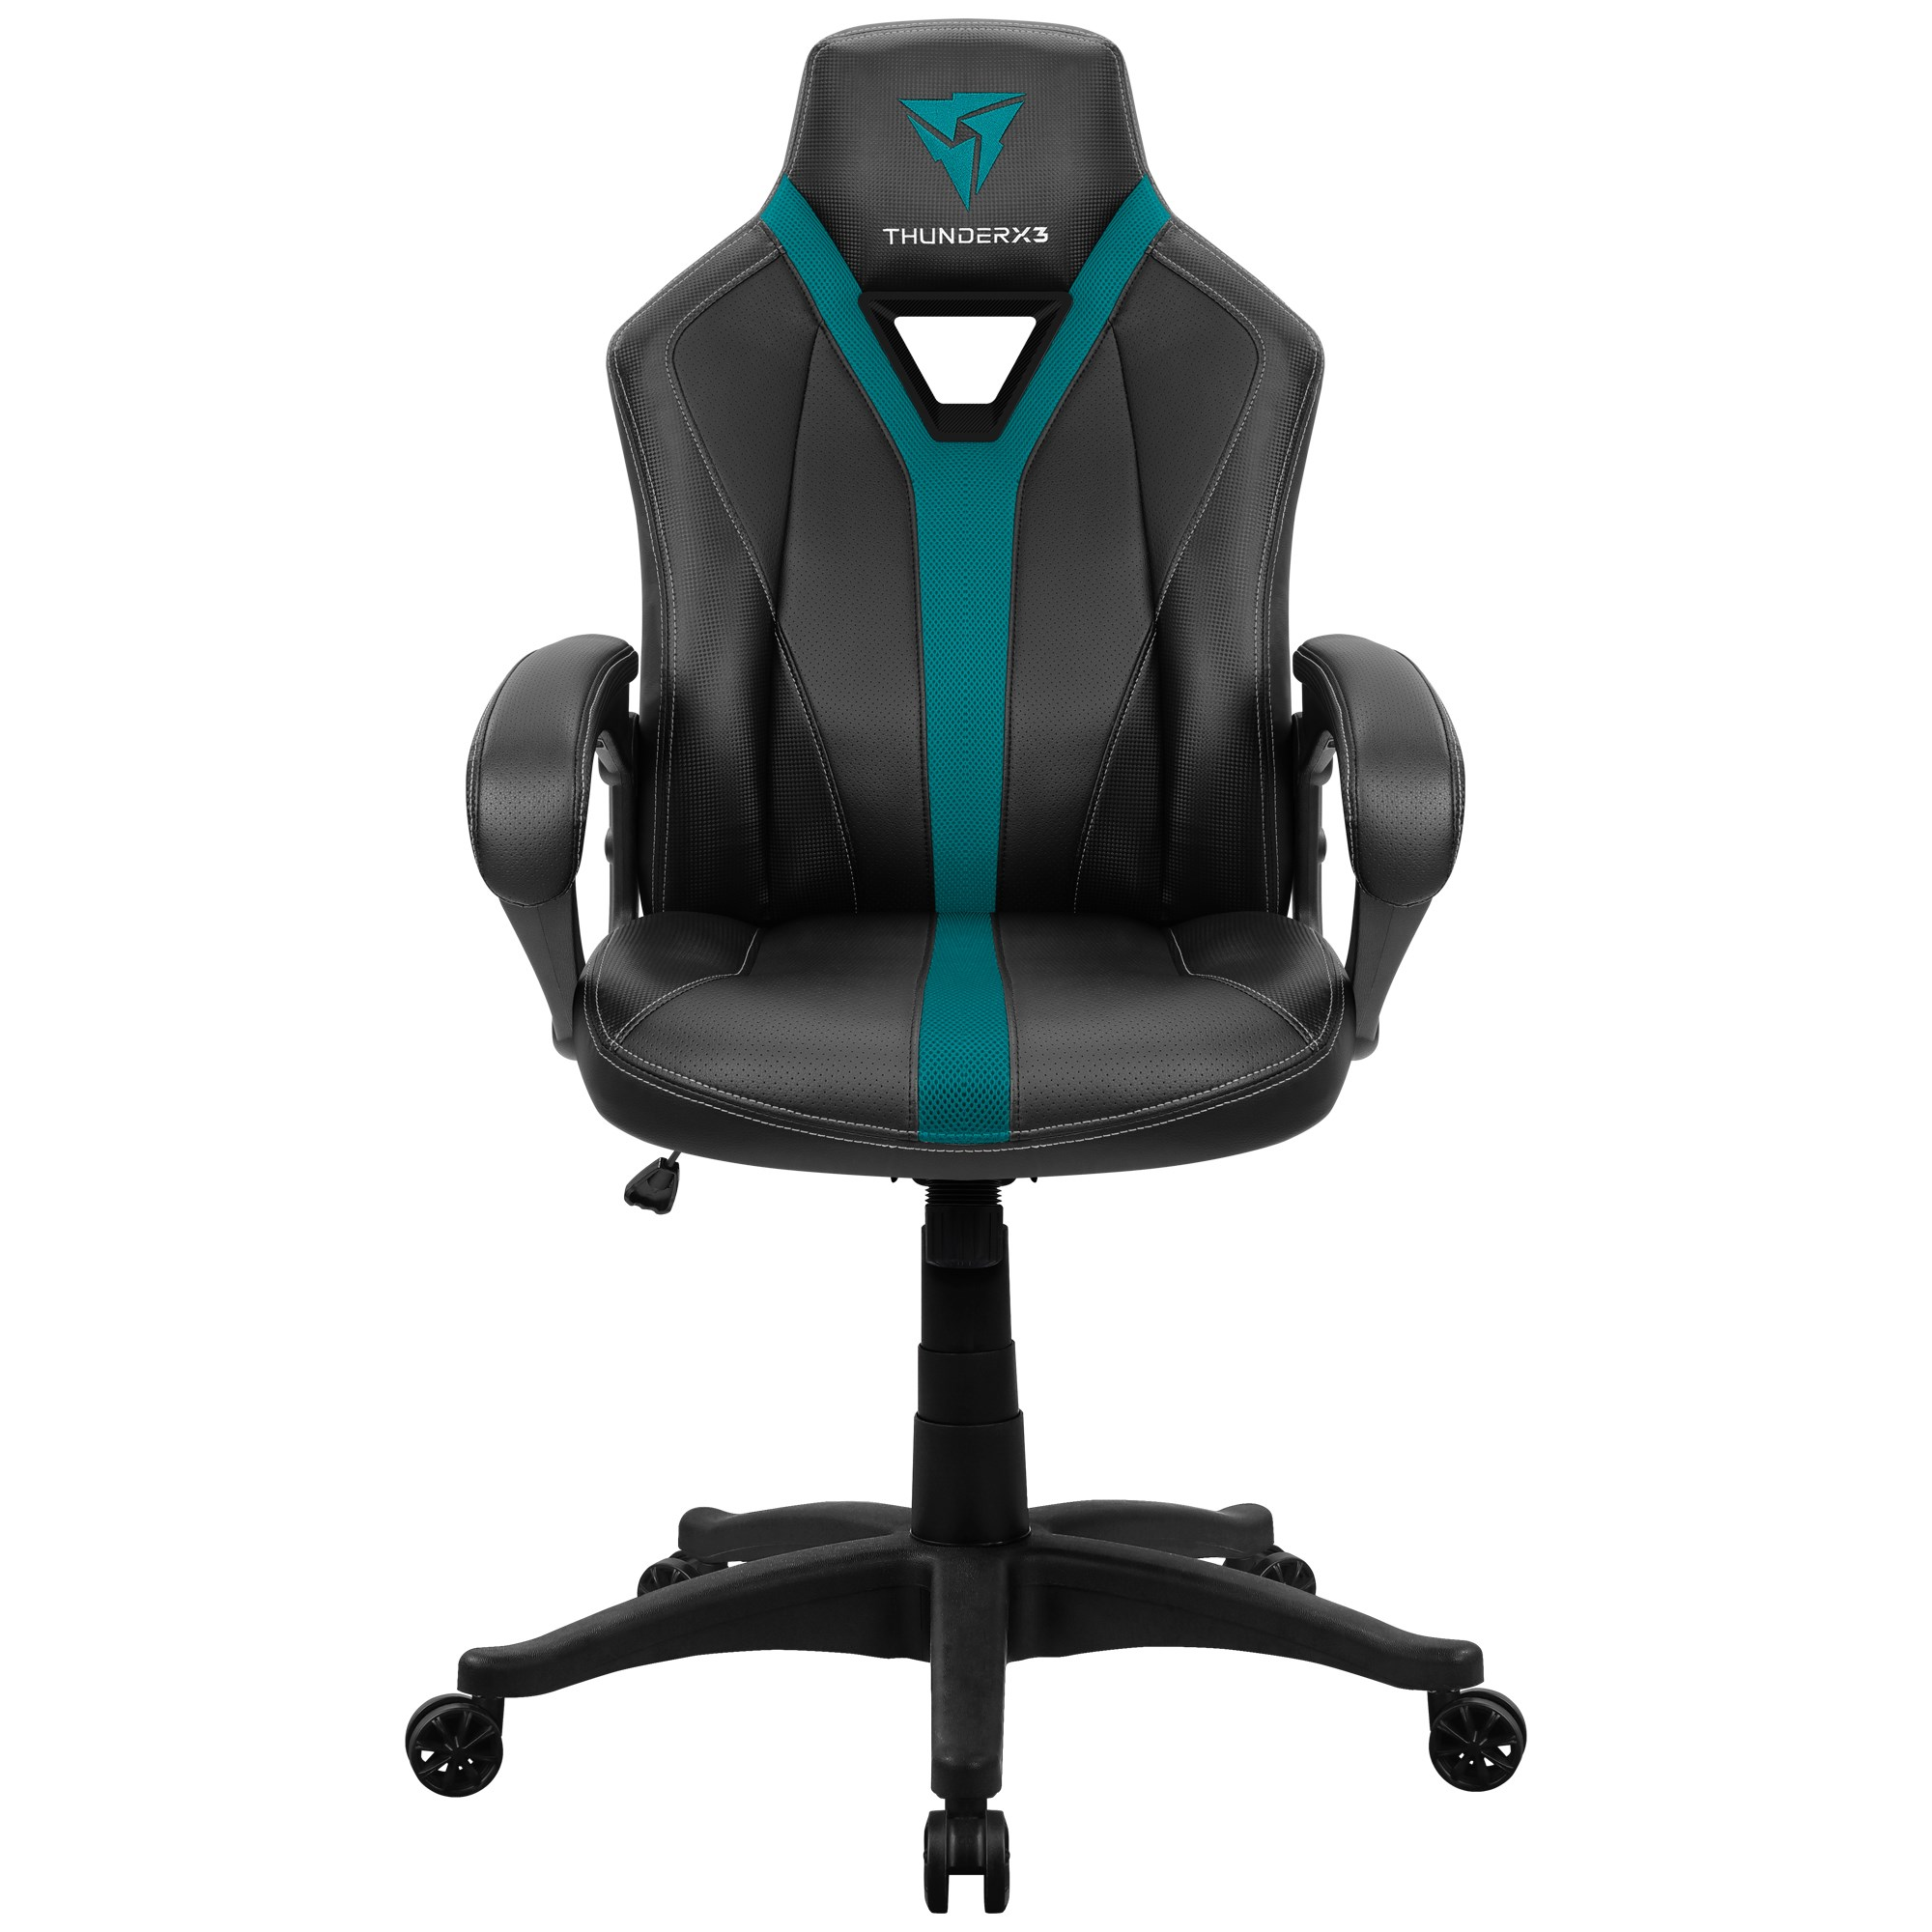 ThunderX3 YC1, Gaming Chair, Technology AIR, Breathable And Microperforada, Cyan